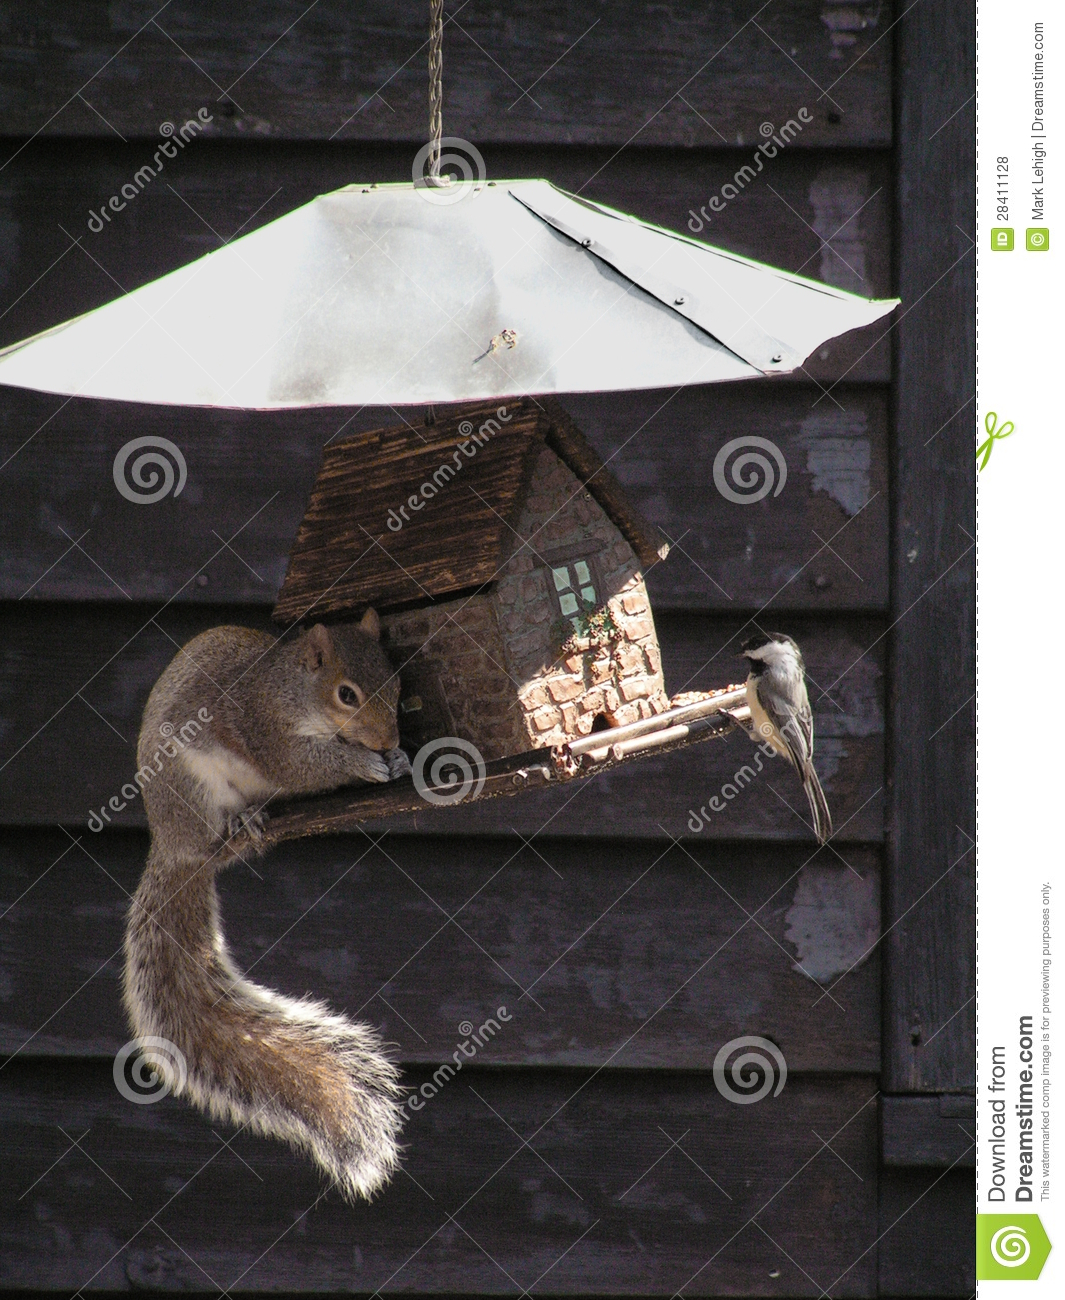 Download Share stock photo. Image of eating, birdwatching, funny - 28411128